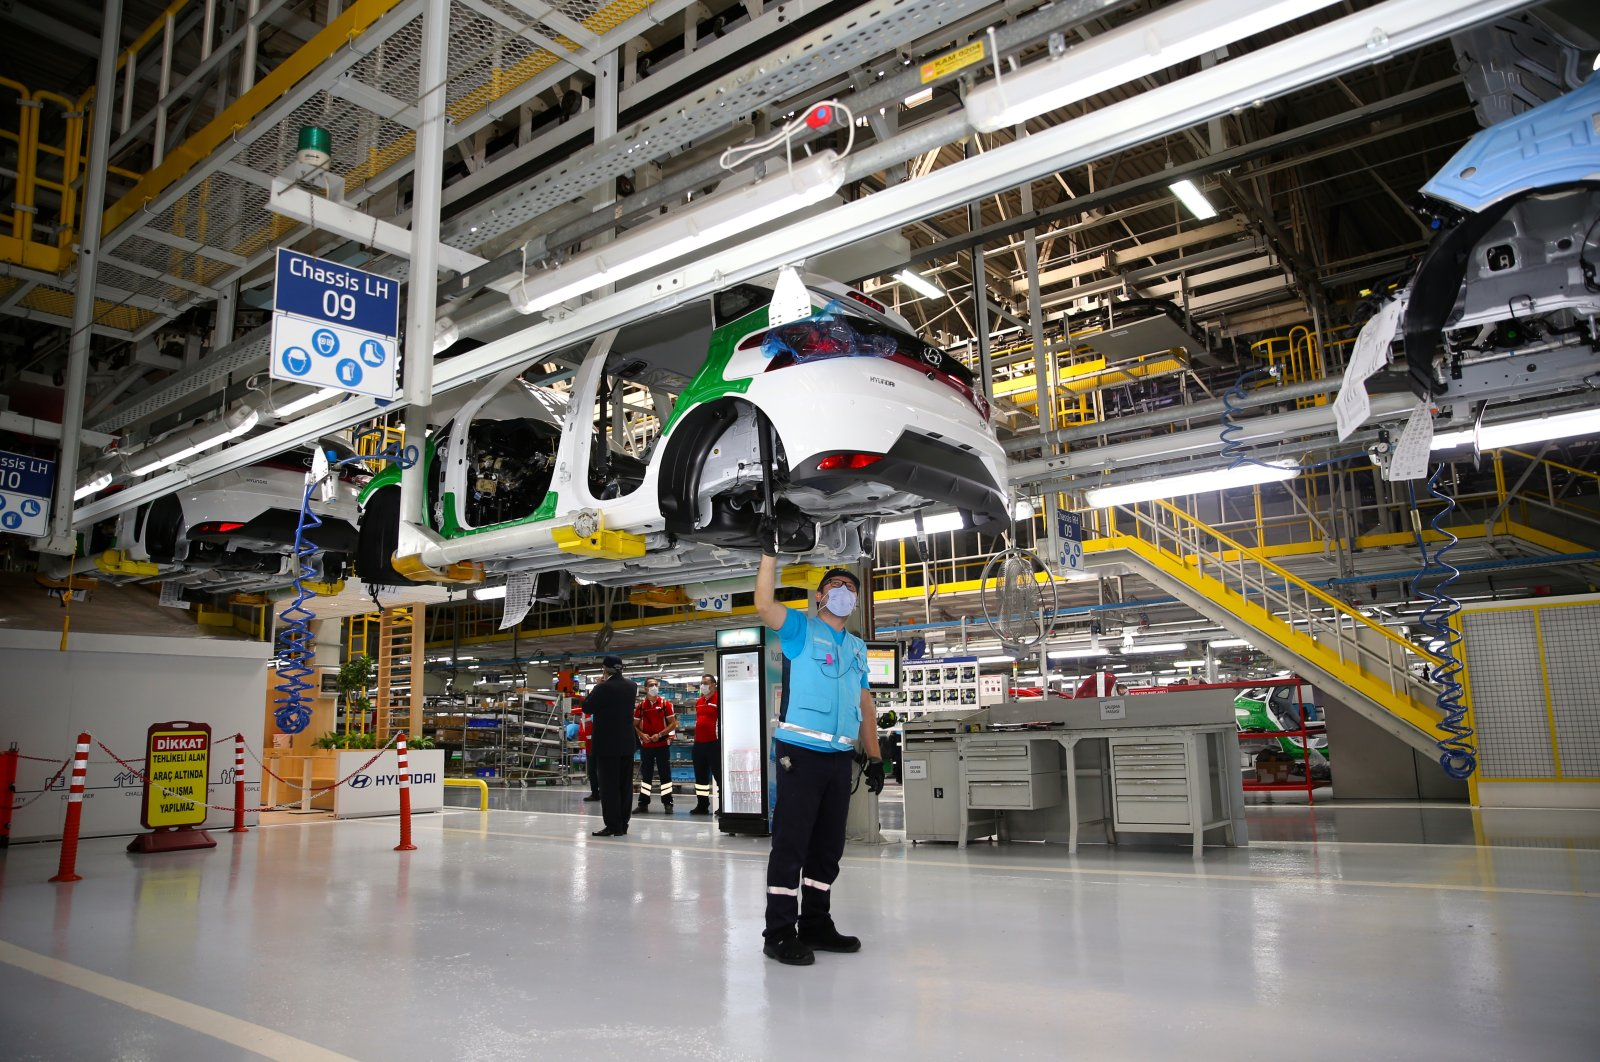 An employee looks up at a Hyundai i20 car being manufactured in Kocaeli province, northwestern Turkey, Aug. 28, 2020. (AA Photo)